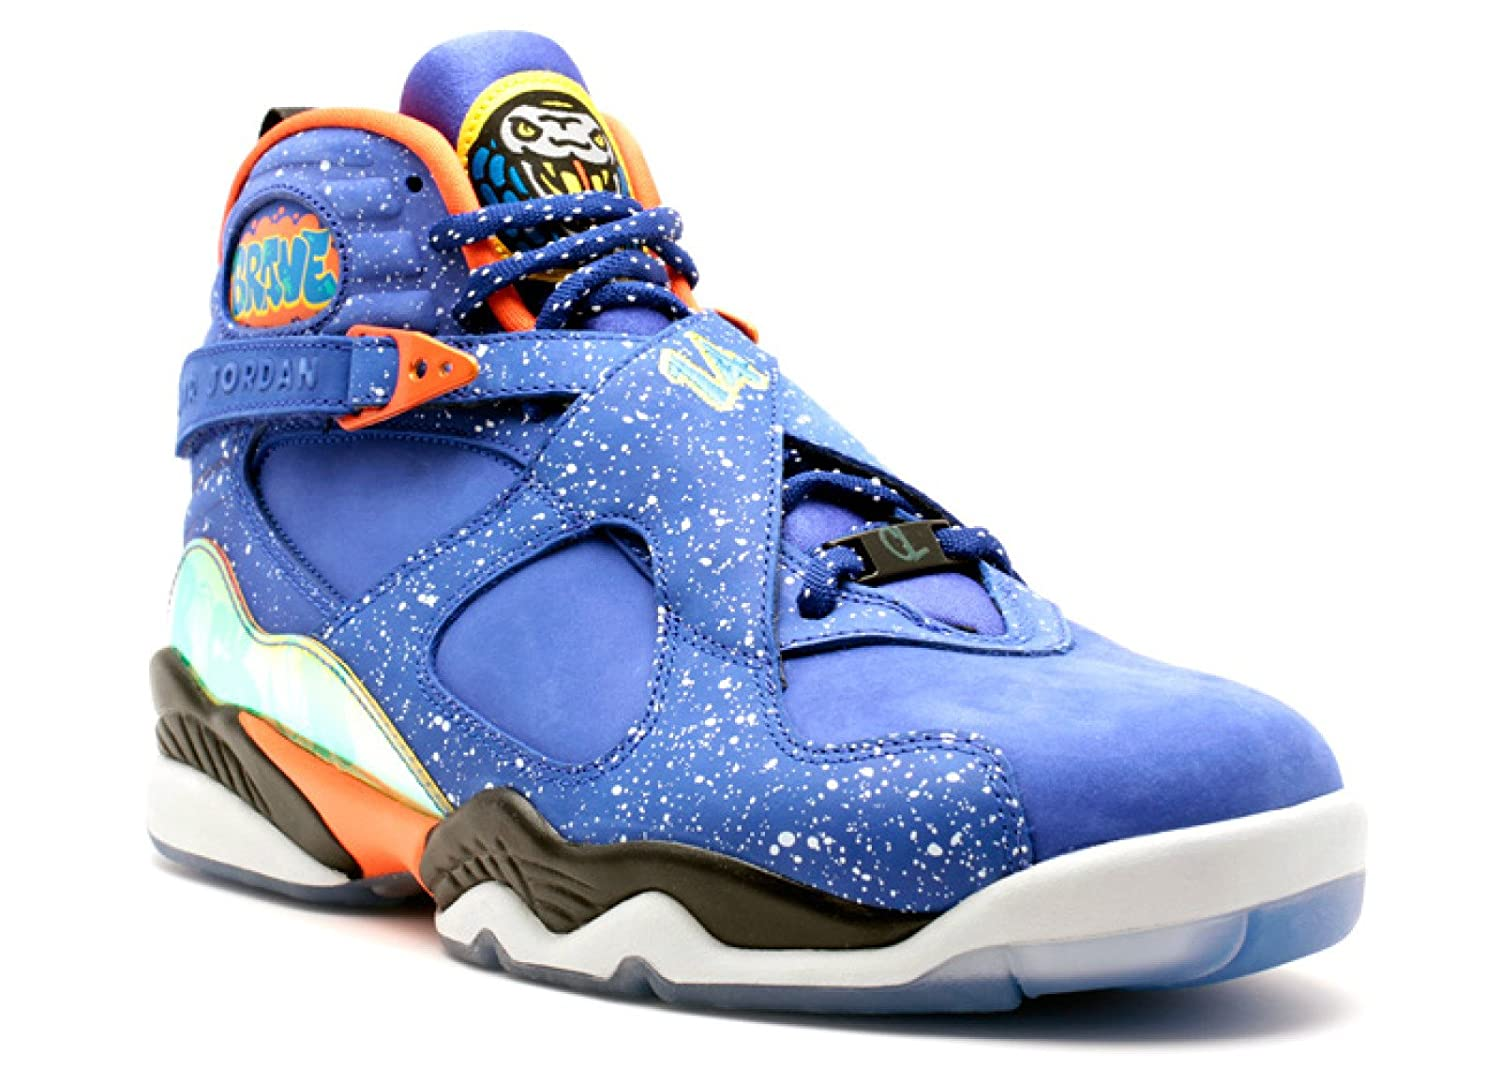 891bd5fa472 Nike AIR Jordan 8 Retro DB  DOERNBECHER  - 729893-480 - Size 8 -   Amazon.co.uk  Shoes   Bags